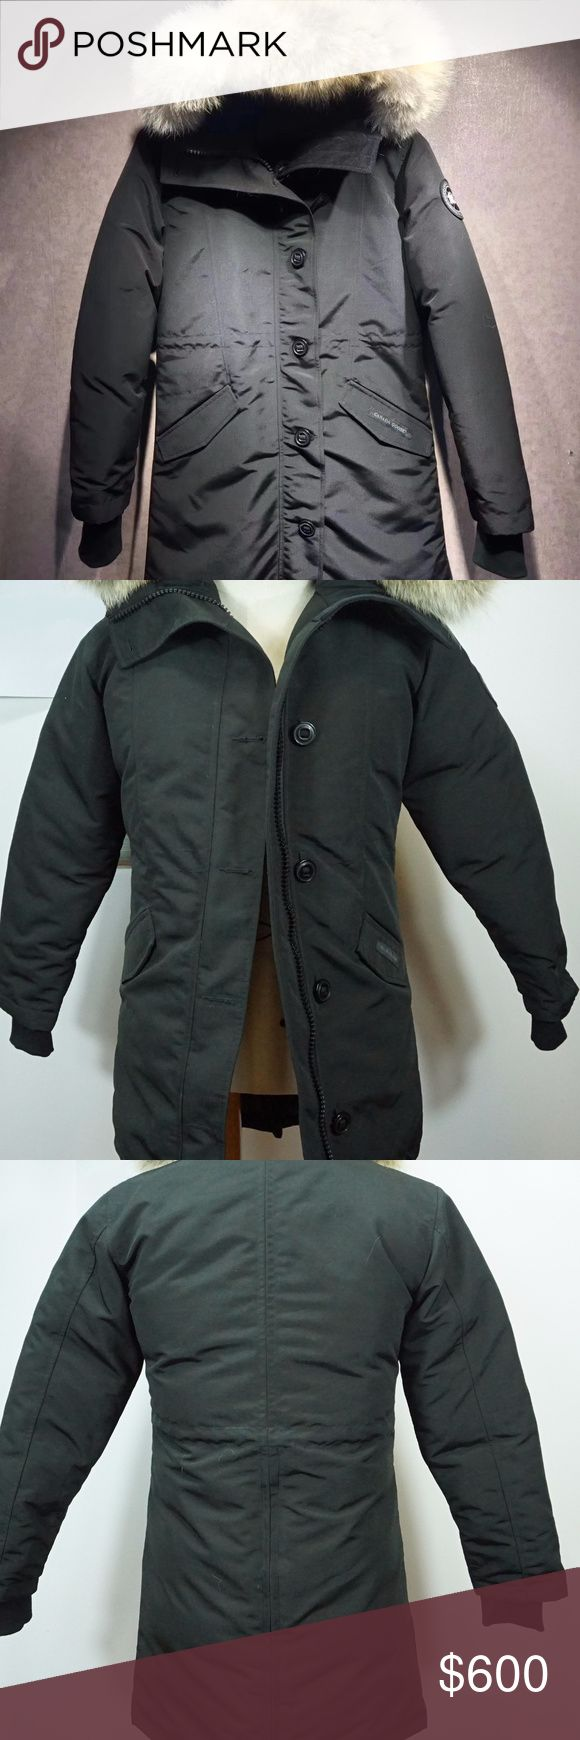 Canada Goose long coat BRAND NEW IN BOX WITH ALL TAGS HAVE OTHER COLORS IN STOCK  CHECK INSTA @sup_brand_shop Canada Goose Jackets & Coats Puffers